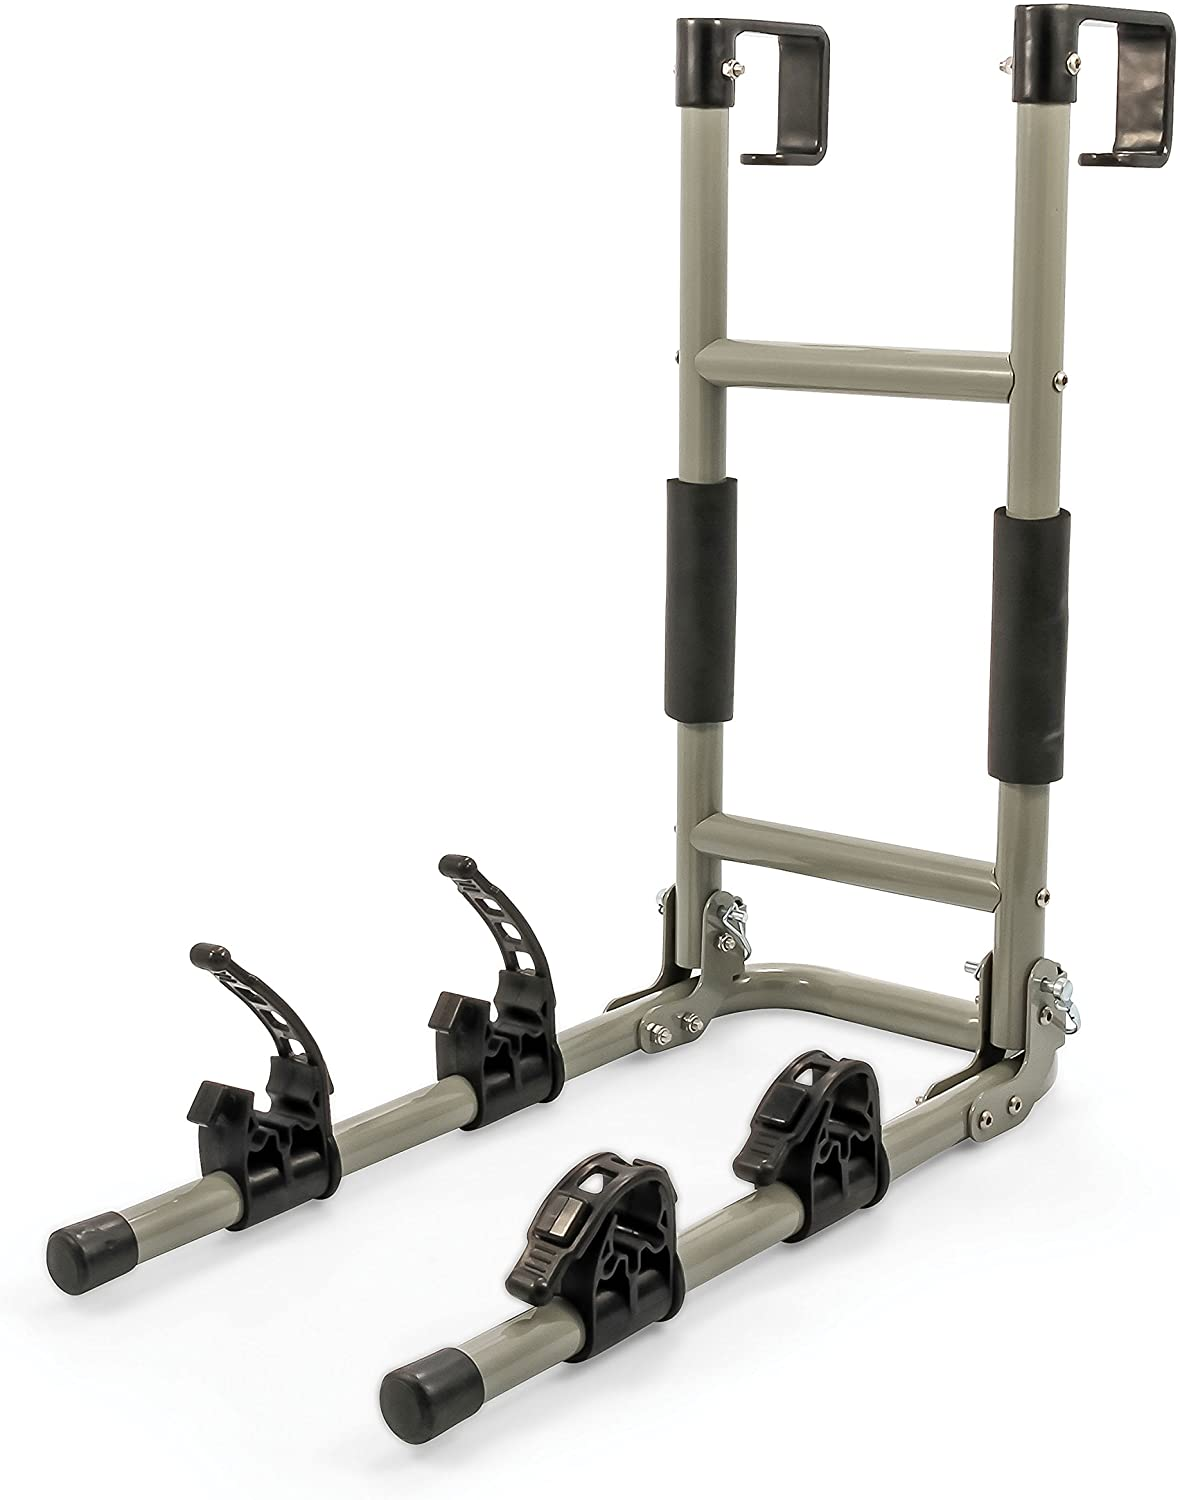 Camco RV Ladder Mount Bike Rack - Easily Installs on Standard RV Ladders, Holds Two Bikes at Once, Folds for Convenient Storage